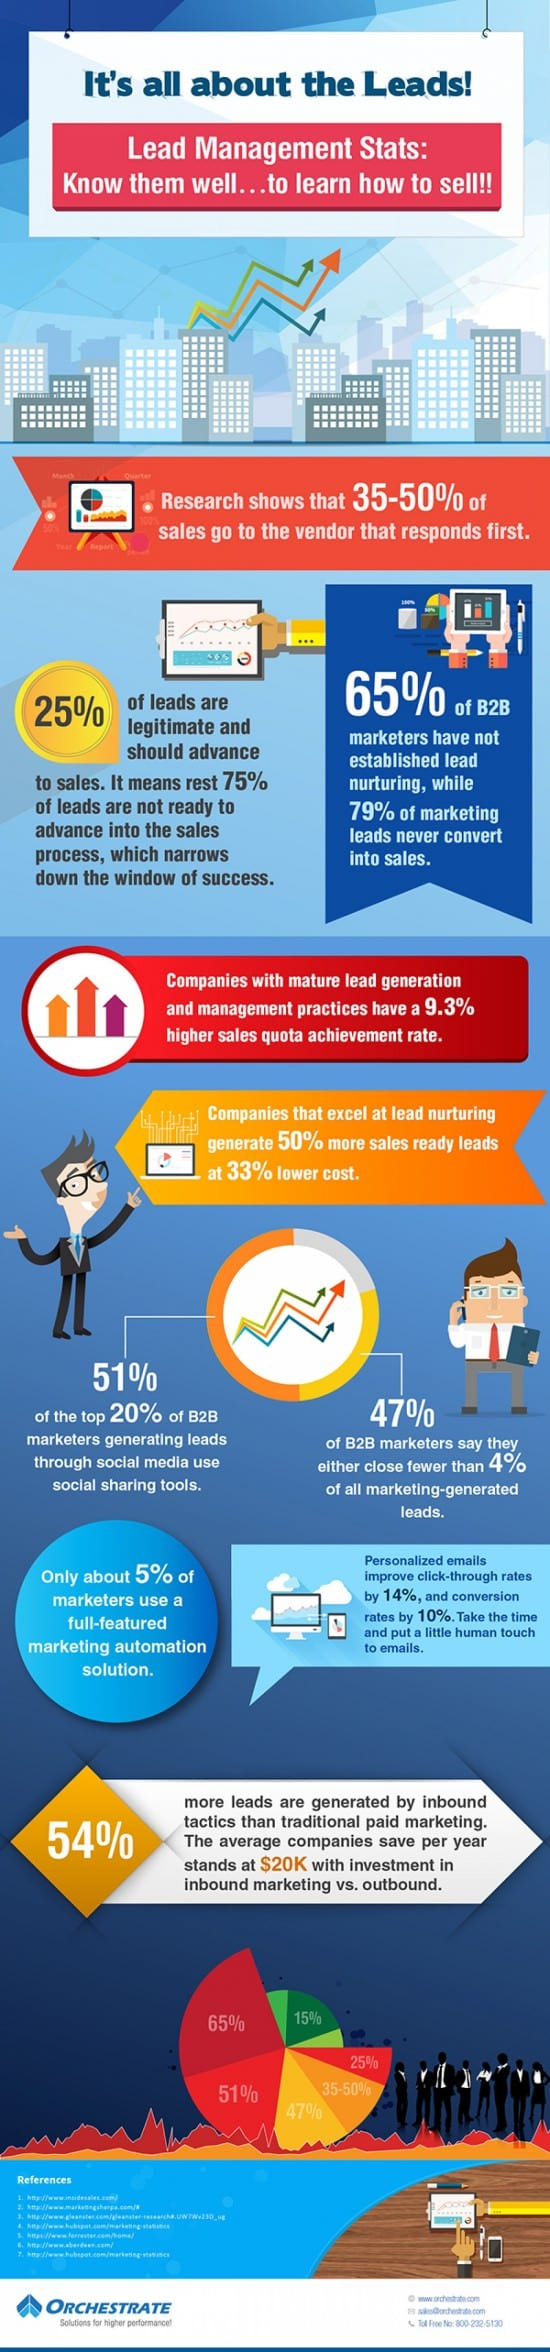 lead management stats